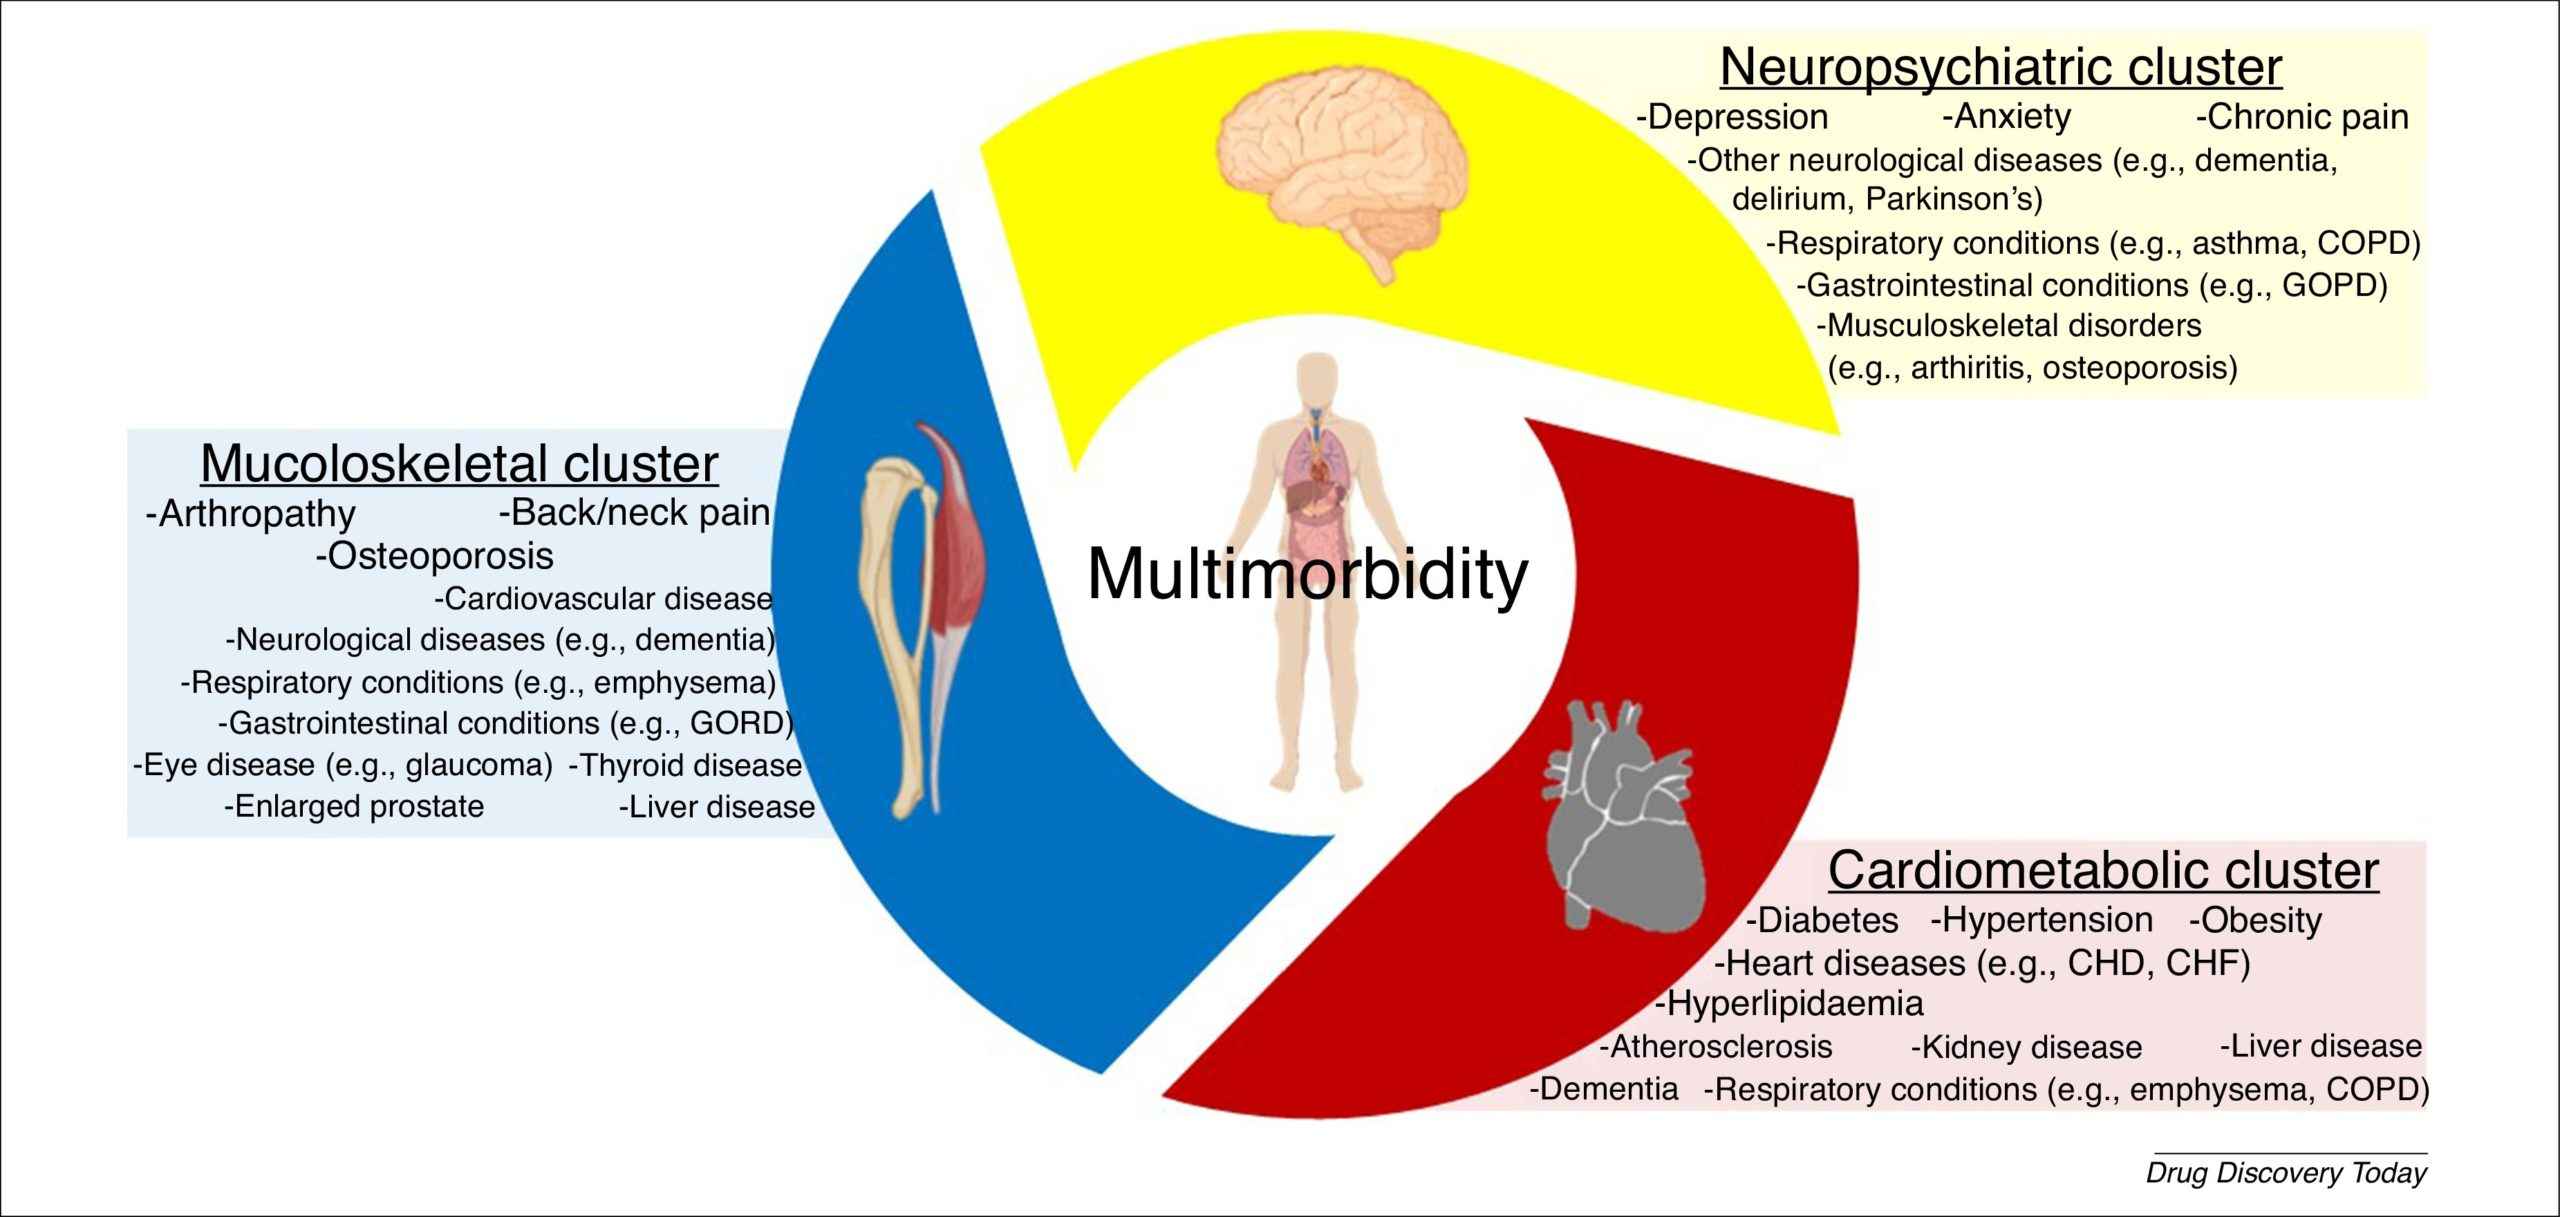 Diagram showing three categories of multimorbidity diseases: musculoskeletal conditions, cardiometabolic diseases, and neuropsychiatric conditions.